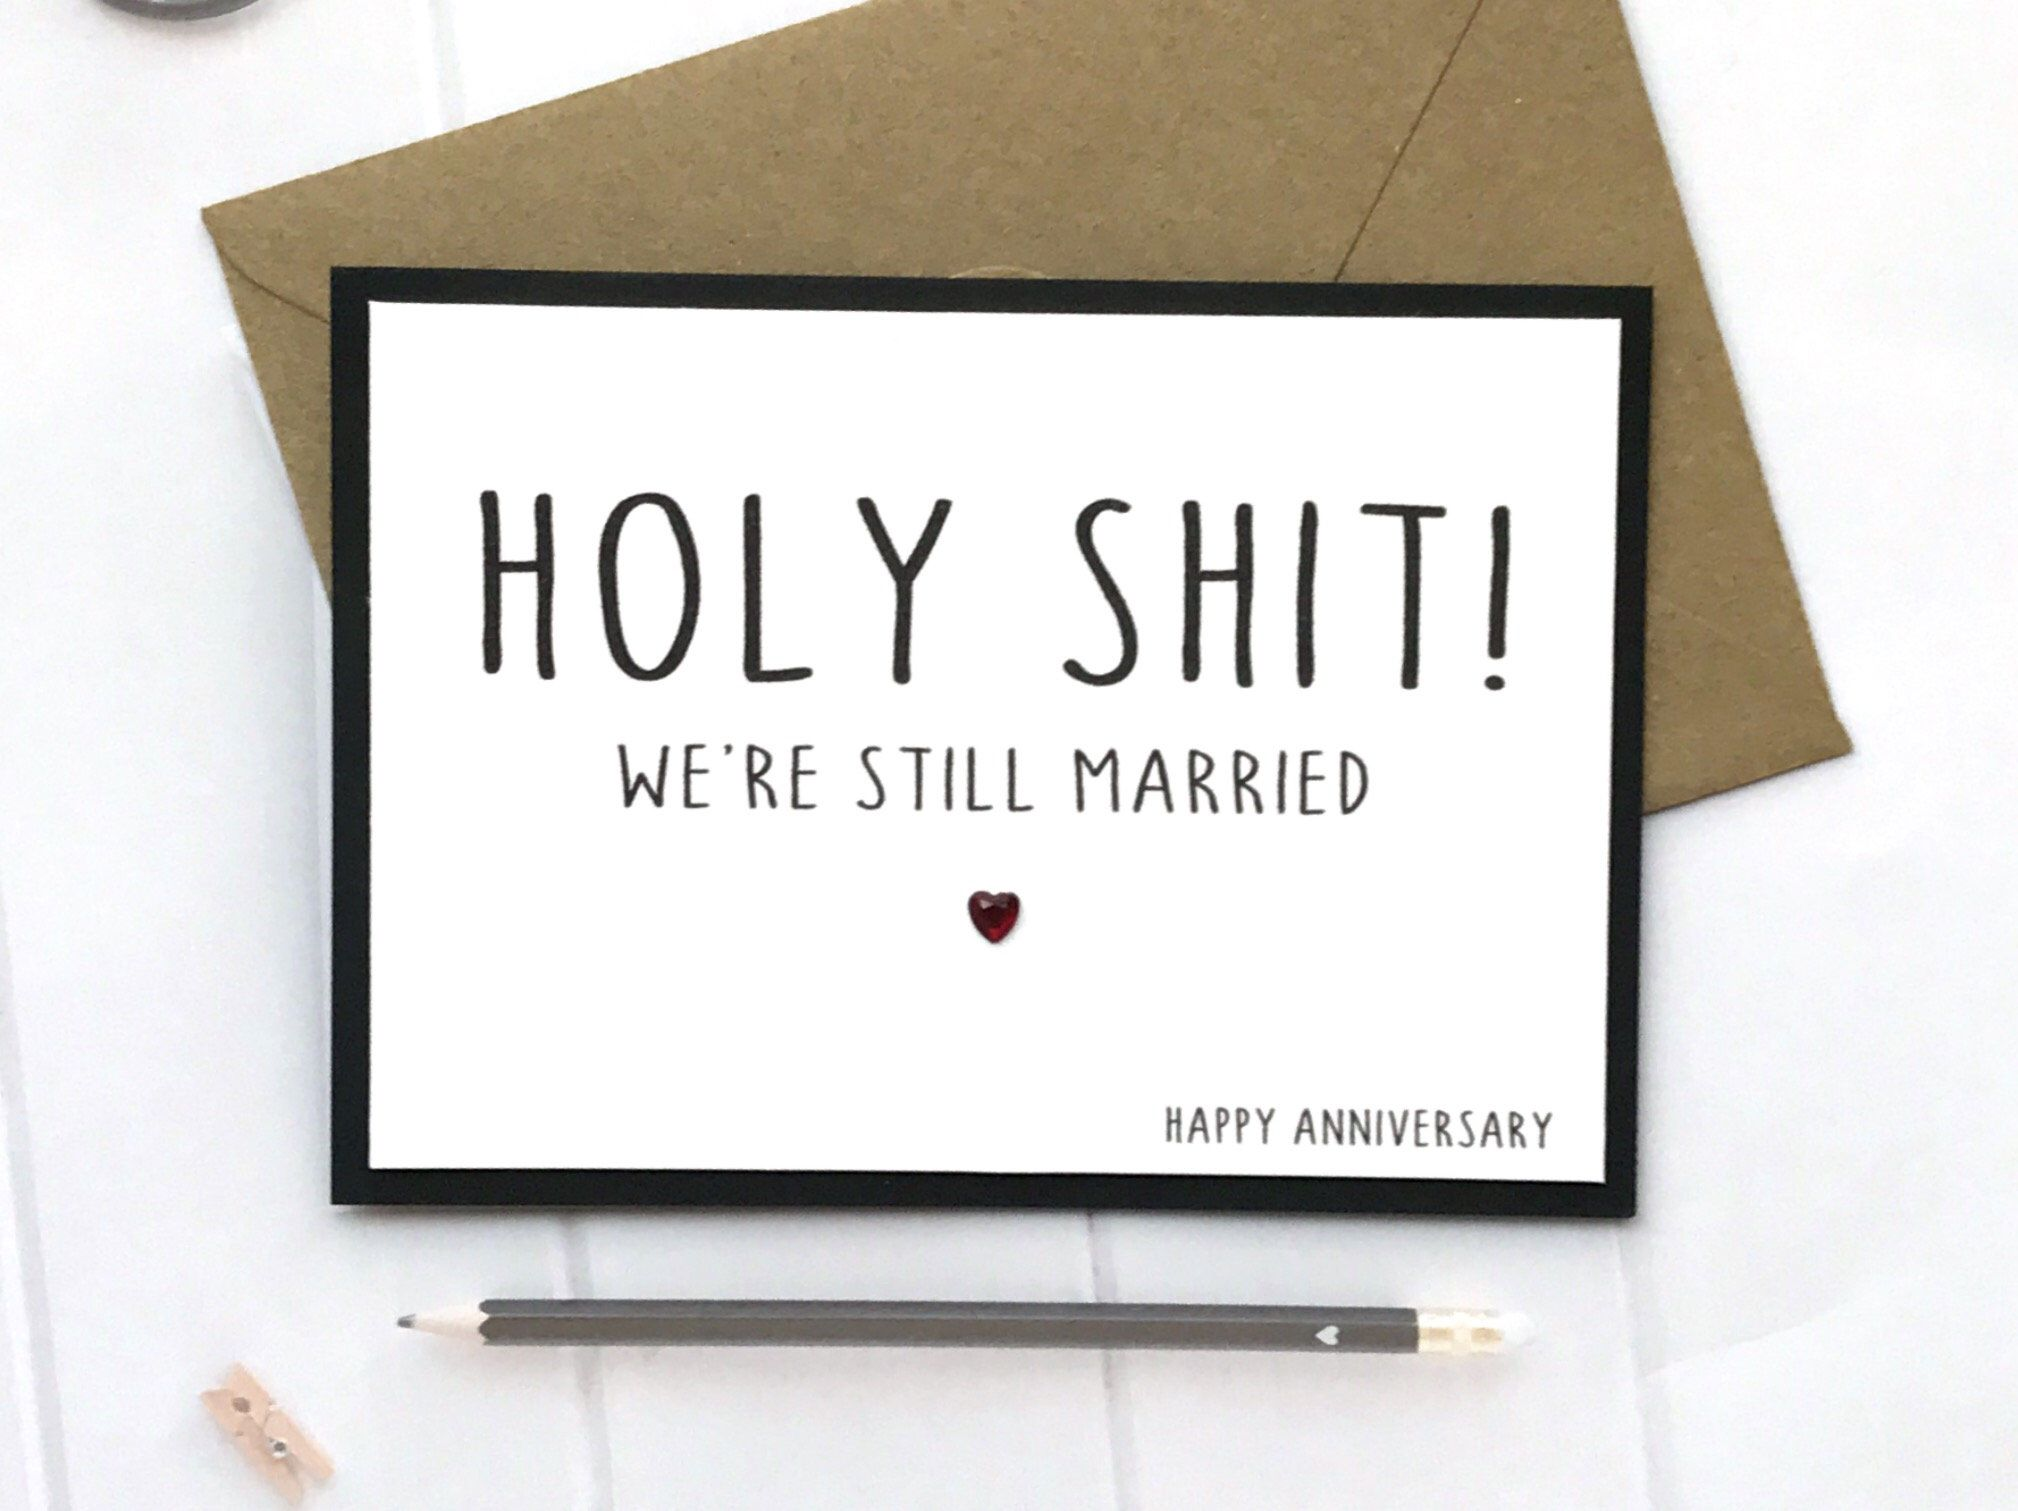 Excited to share this item from my etsy shop holy shit anniversary